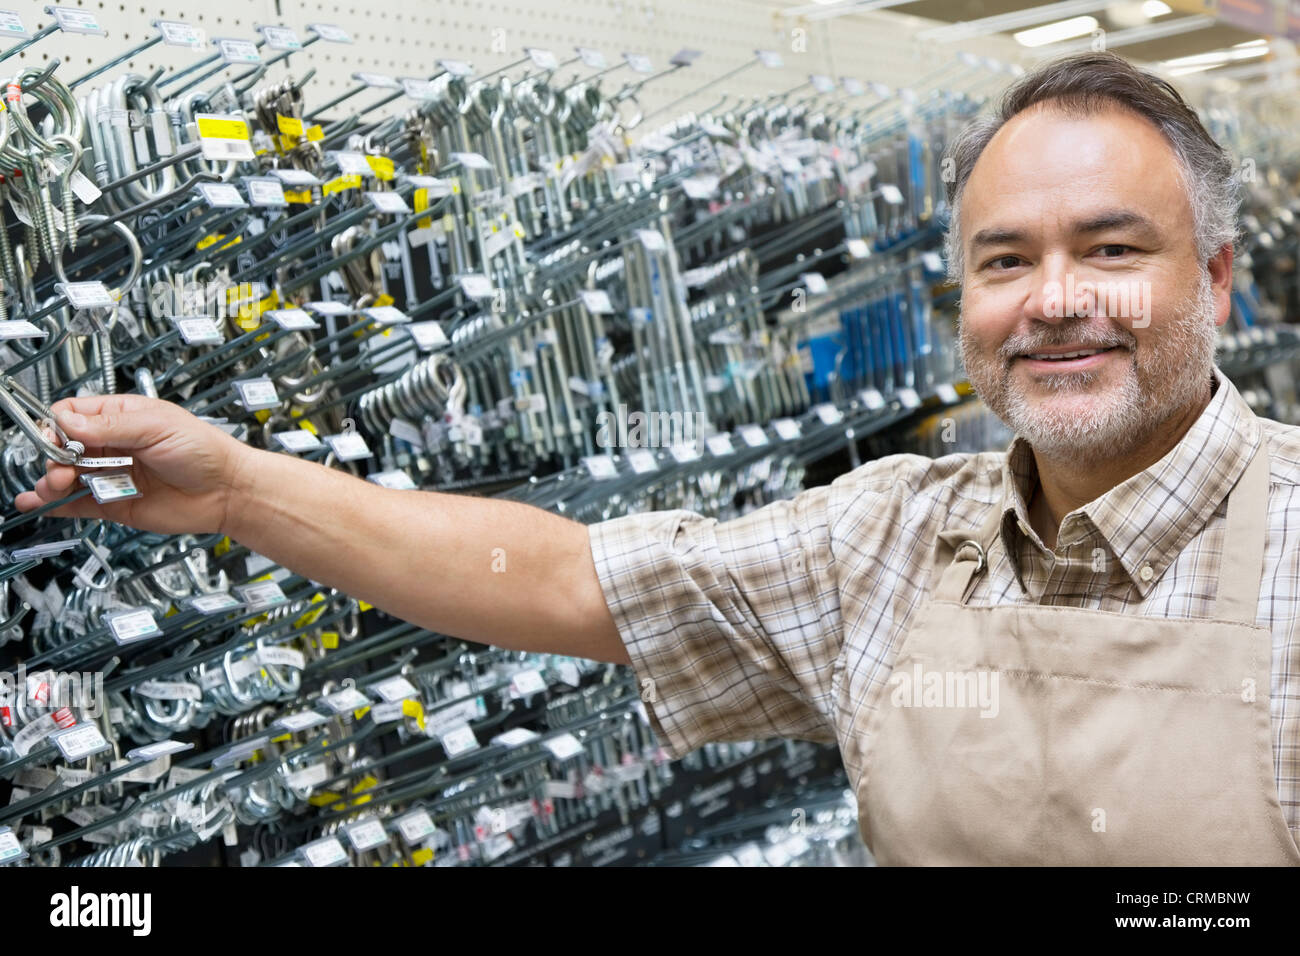 Portrait of a happy mature salesperson holding metallic equipment in hardware store - Stock Image